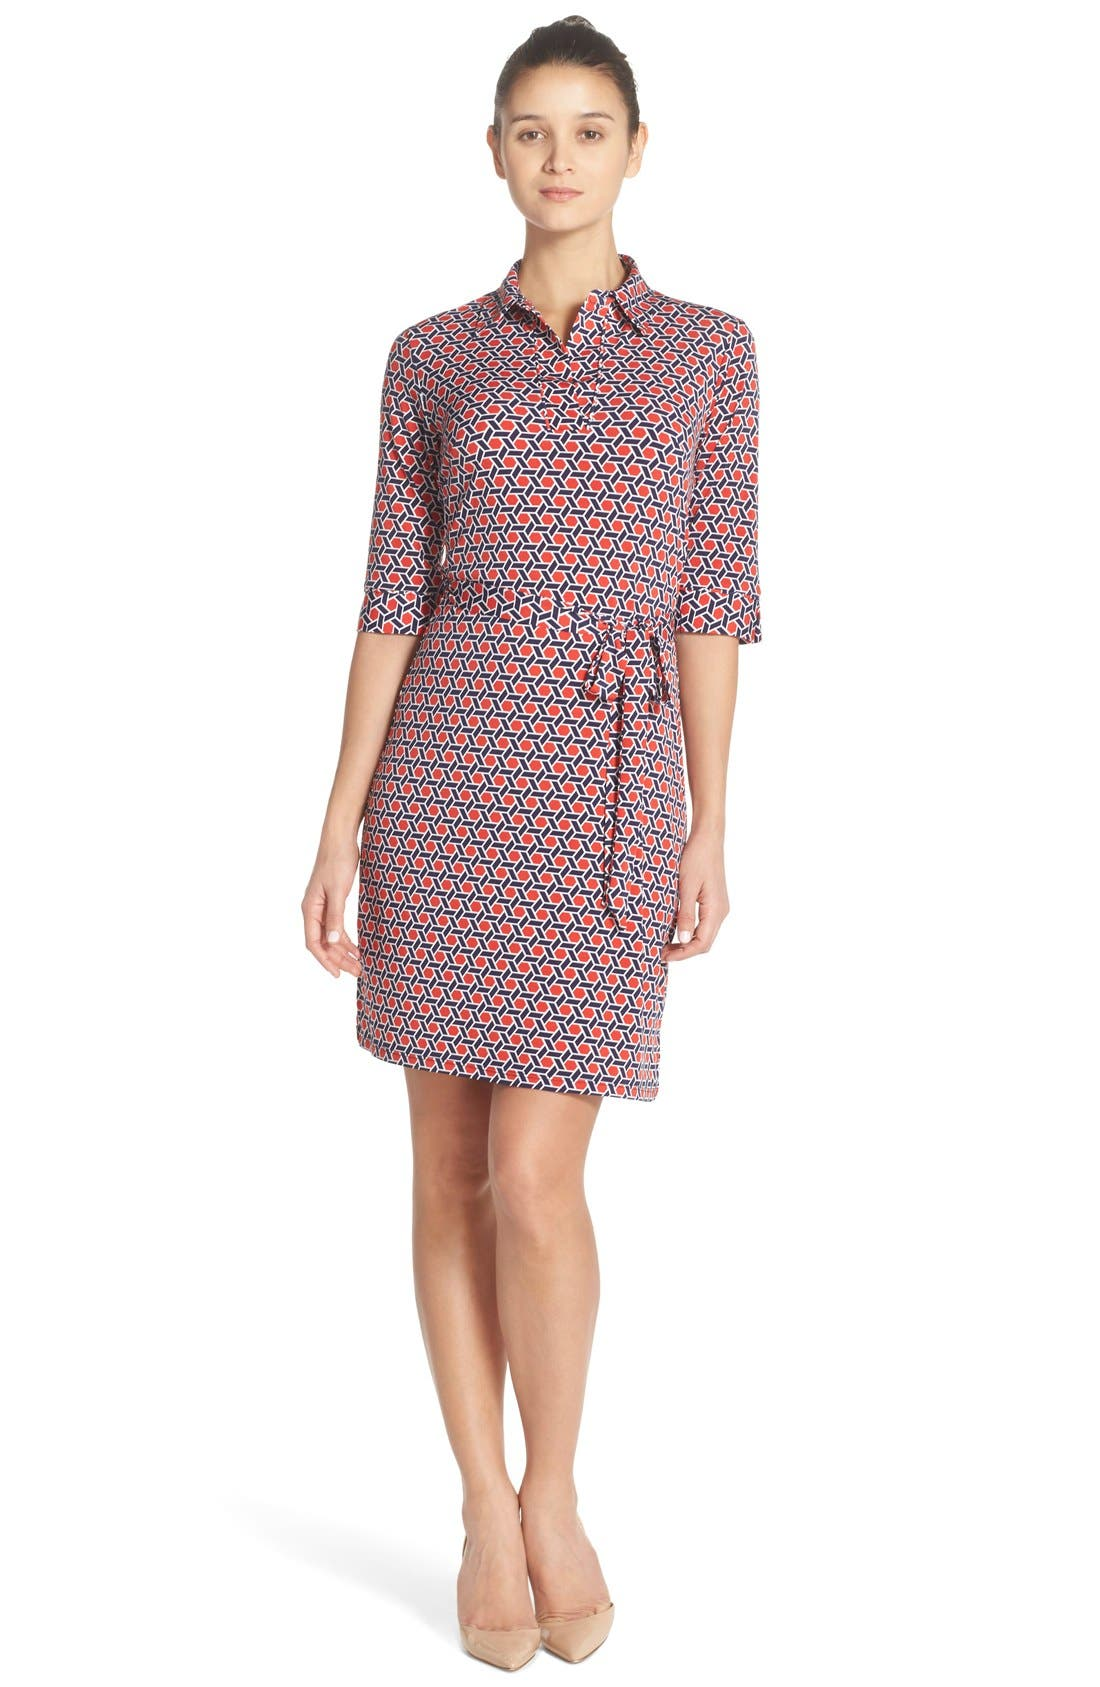 Alternate Image 1 Selected - Laundry by Shelli Segal Print Jersey Shirtdress